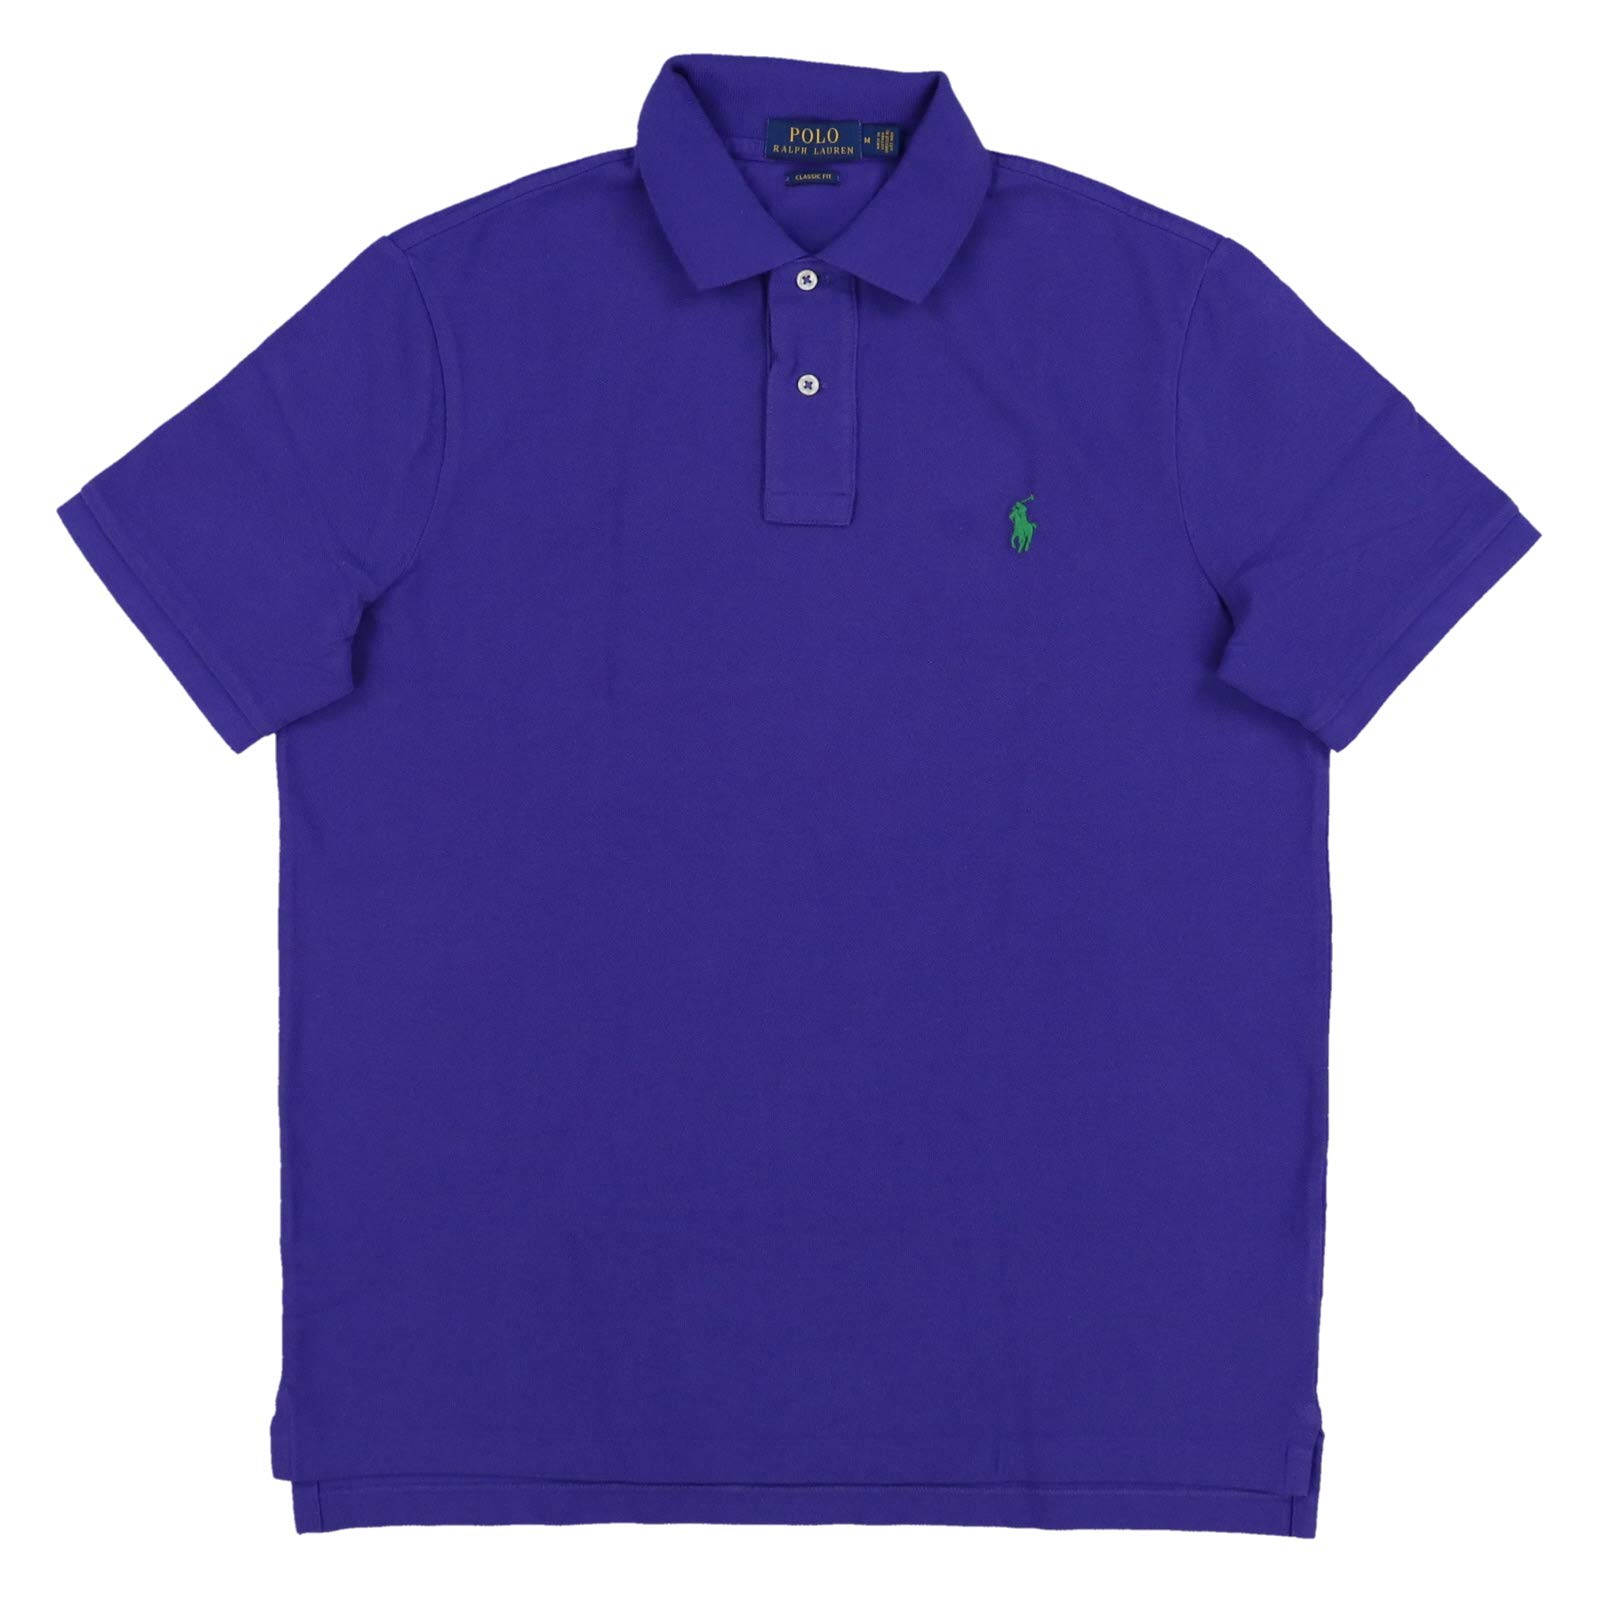 Polo Ralph Lauren Mens Classic Mesh Polo Shirt (XS, Dark Purple)